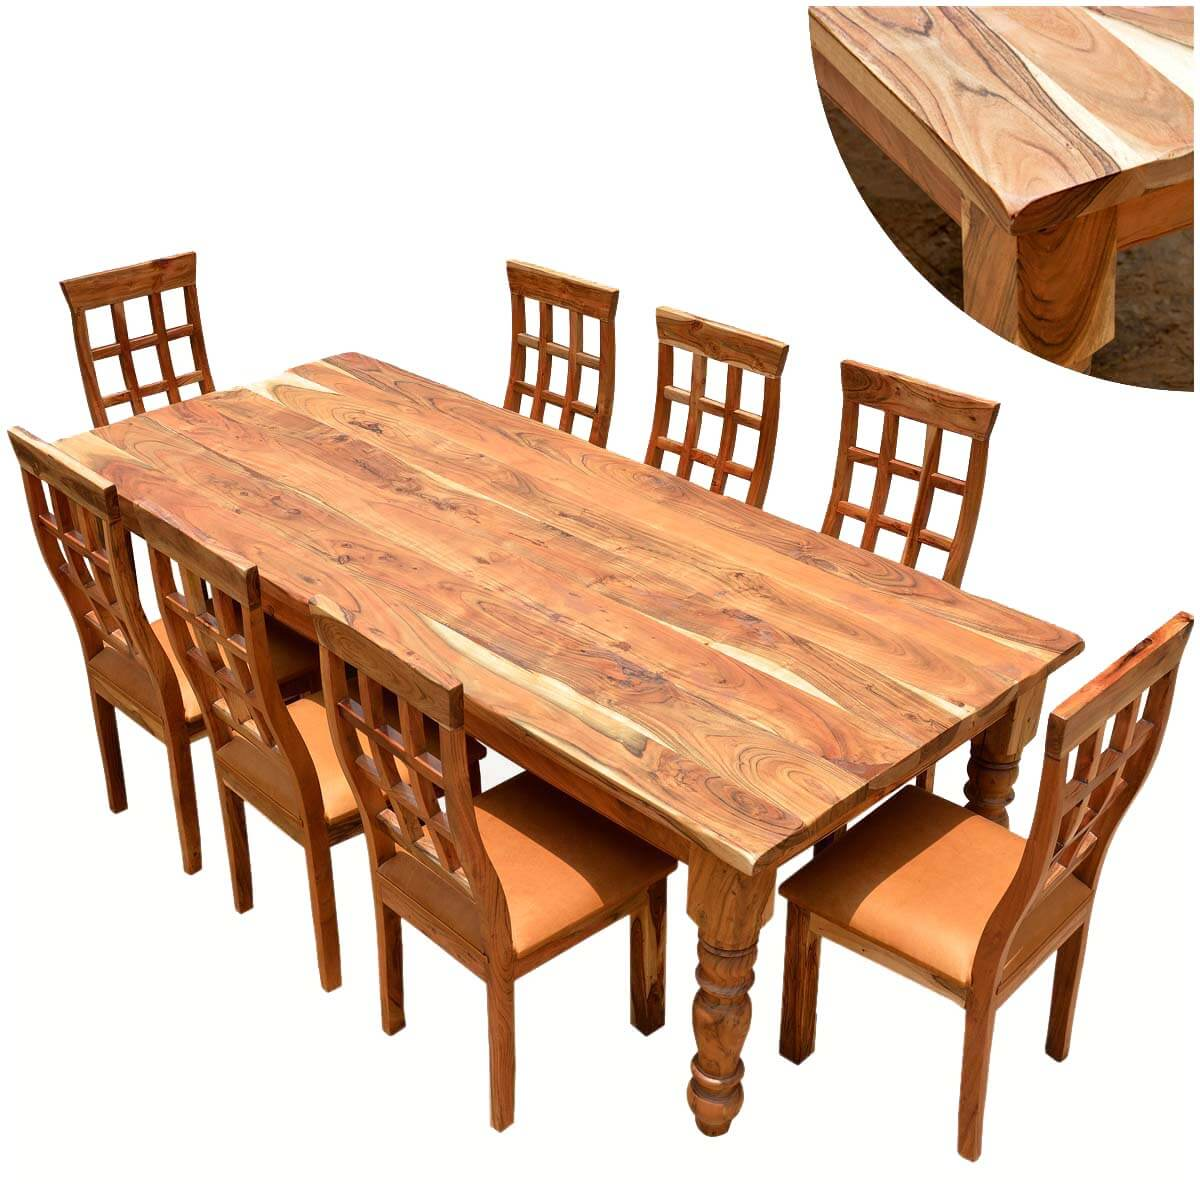 Rustic furniture farmhouse solid wood dining table chair set for Solid wood dining room table and chairs